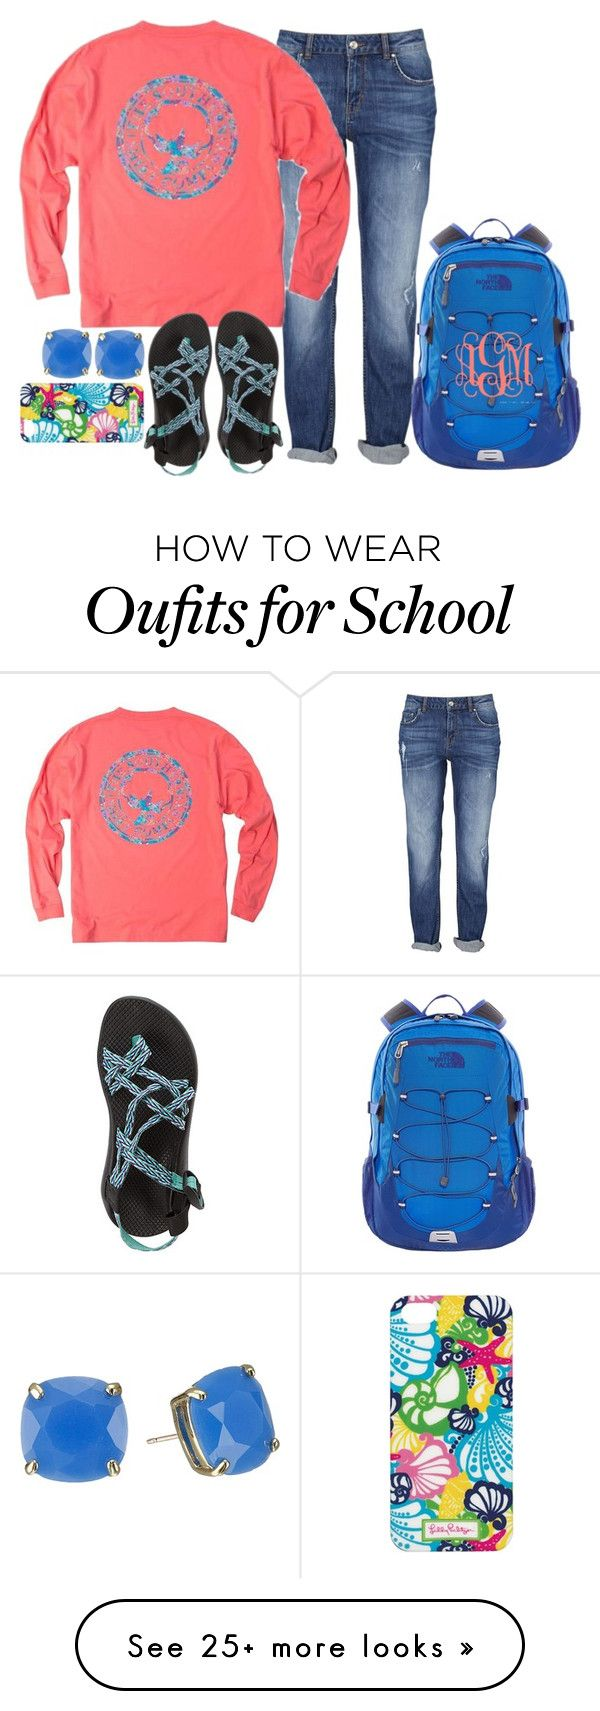 """school today"" by kierstinmoyers on Polyvore featuring Chaco, Kate Spade, Lilly Pulitzer, The North Face, women's clothing, women, female, woman, misses and juniors"